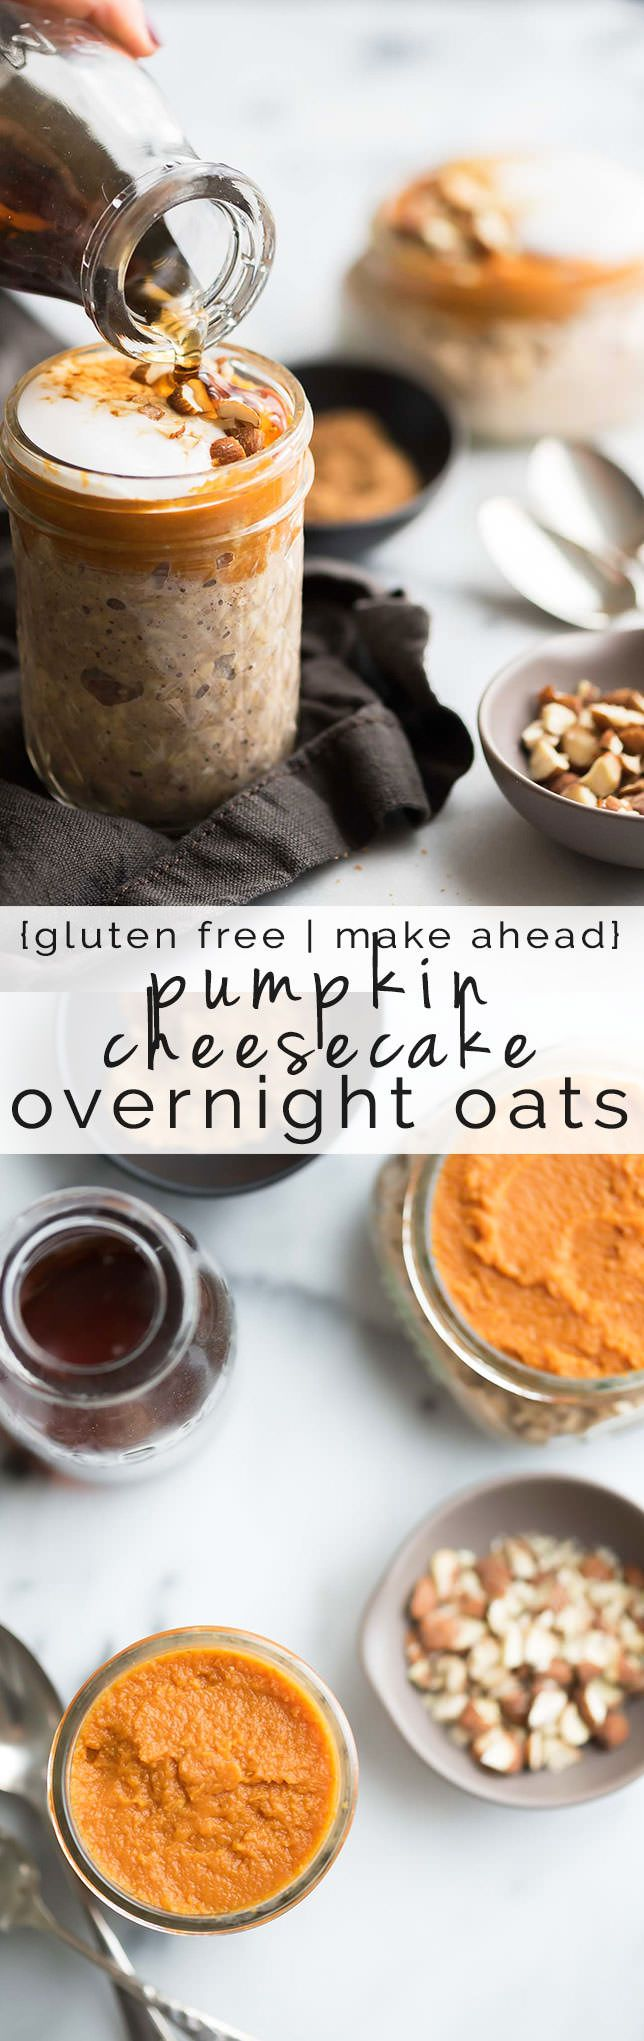 Pumpkin Cheesecake Overnight Oats - a step up from the basic overnight oats in a jar! With a creamy cheesecake layer, they're a dessert inspired breakfast!